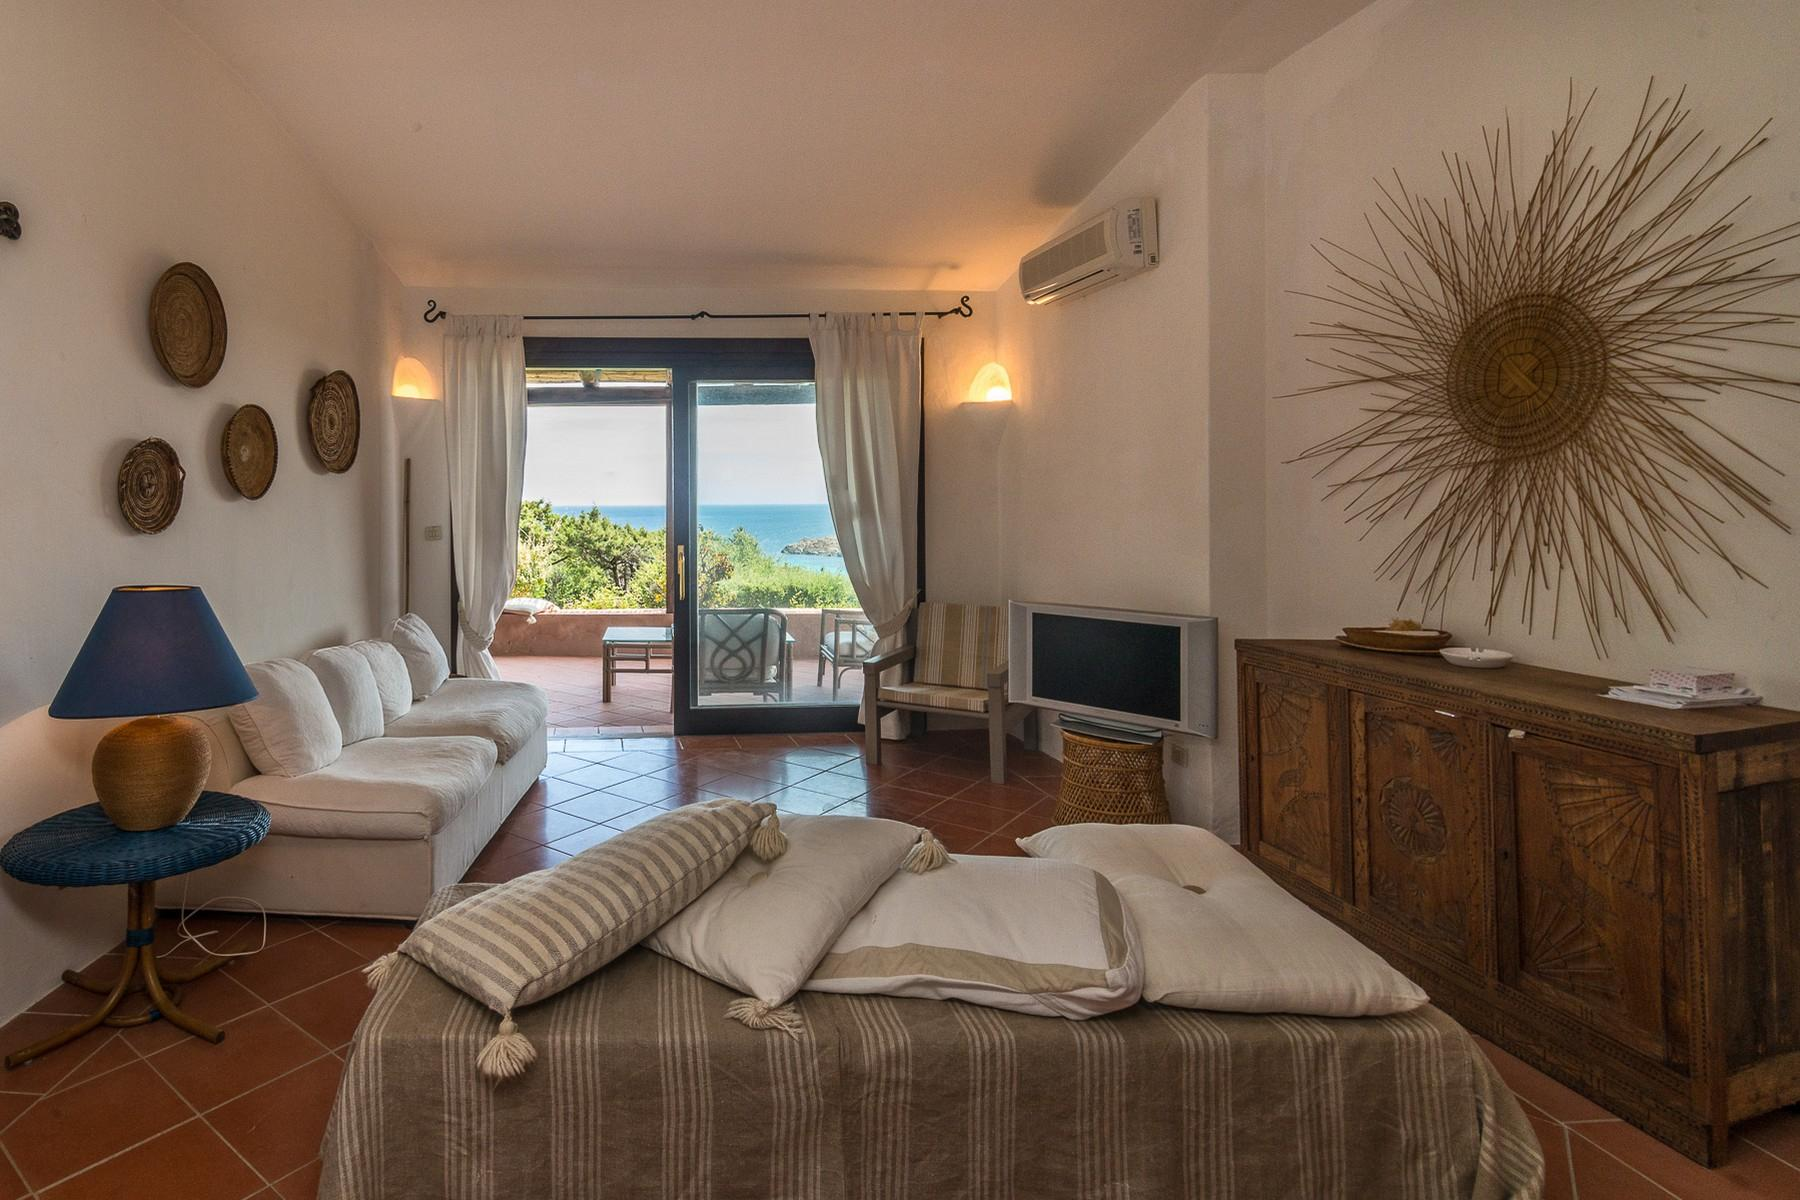 Porto Cervo Cala Granu Delightful Apartment a few steps from the beach - 7